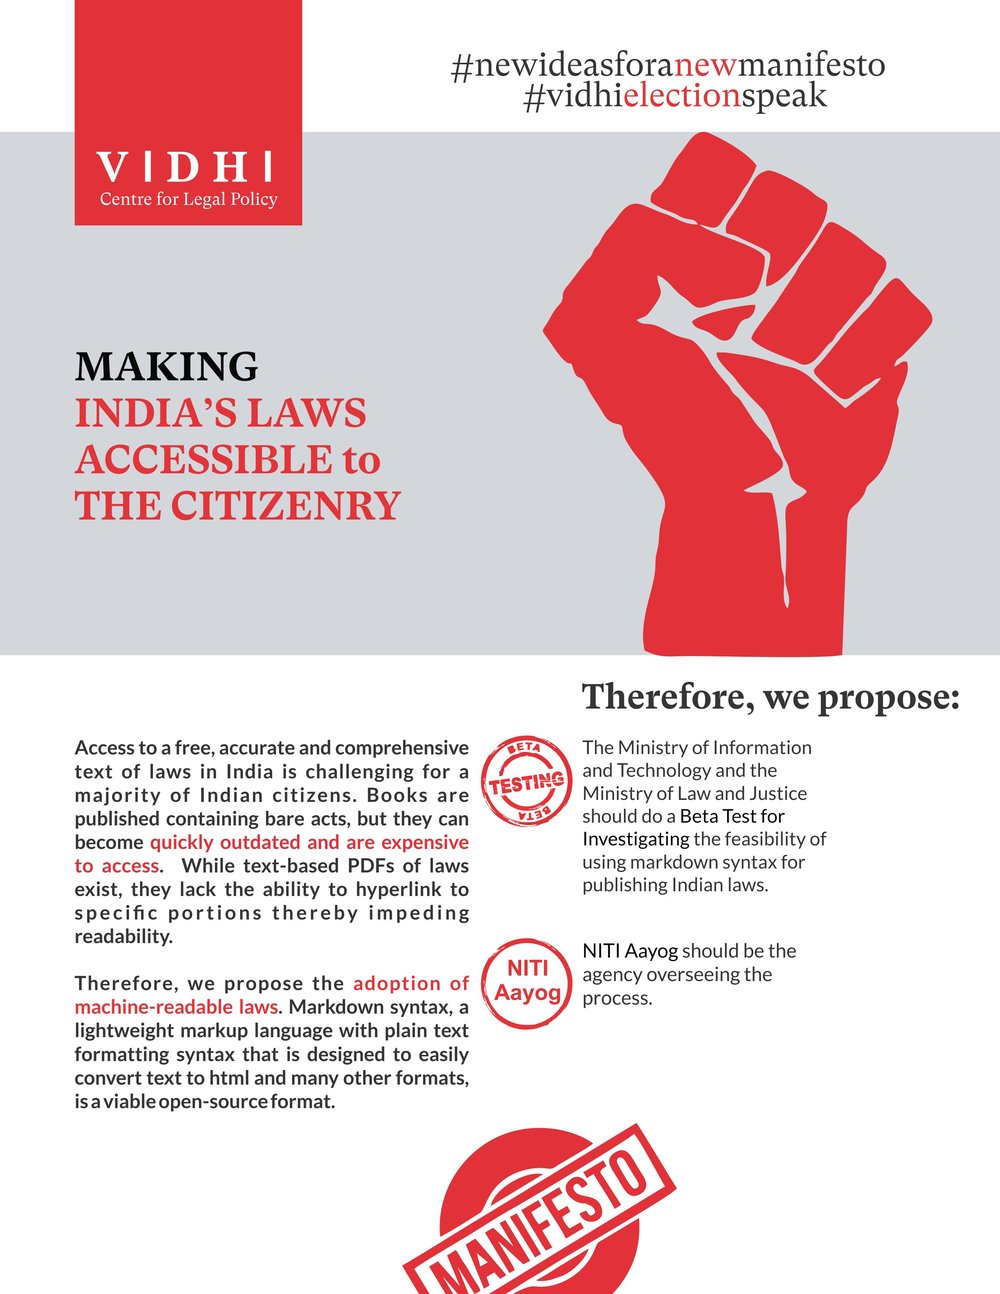 Making India's Laws Accessible to the Citizenry 1